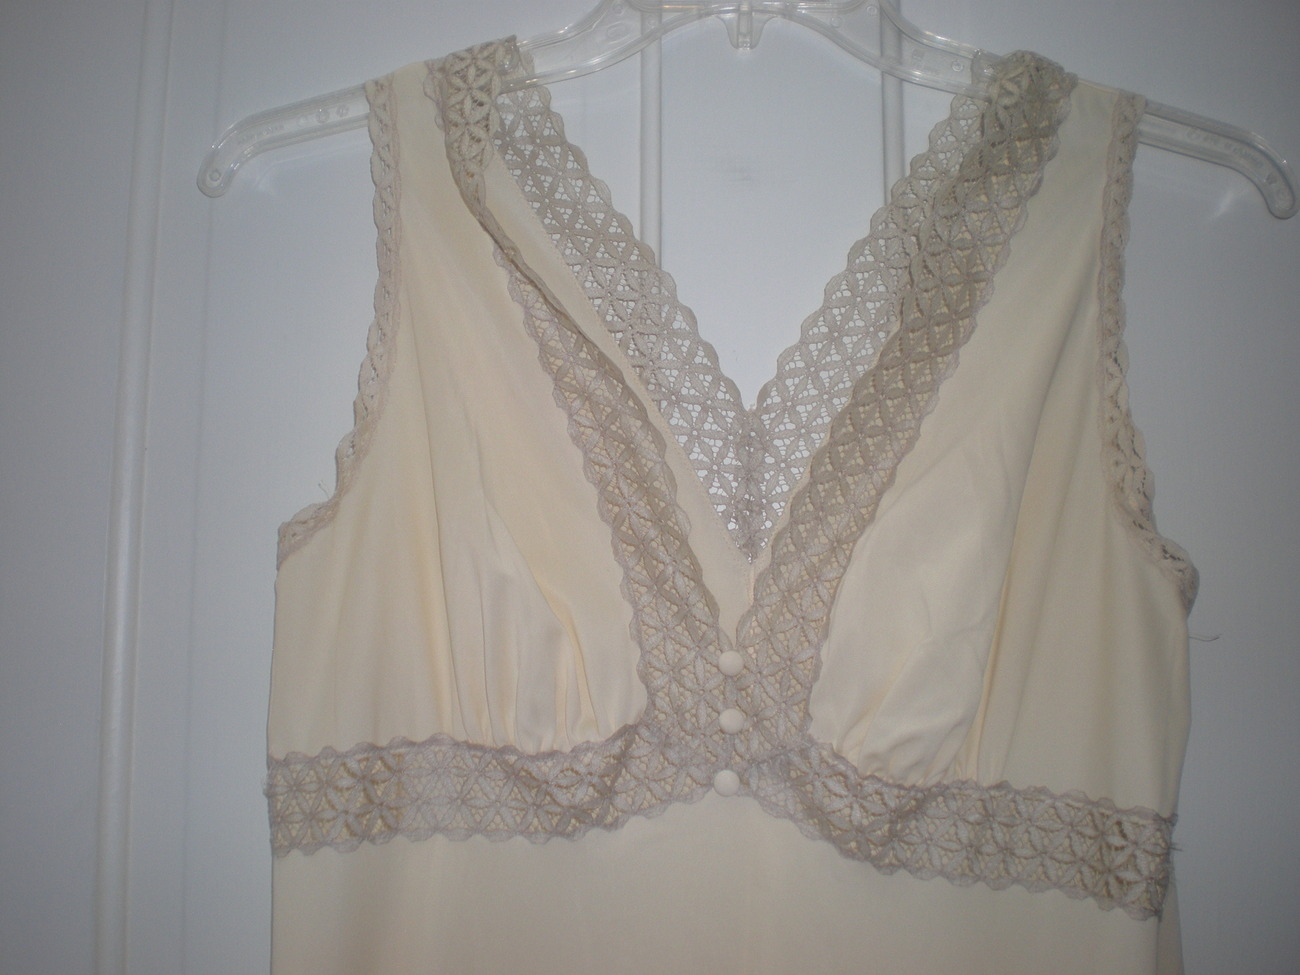 Vtg Vanity Fair Sz 34 Hollywood Night Gown Full Length LONG Sweep Beige w Lace